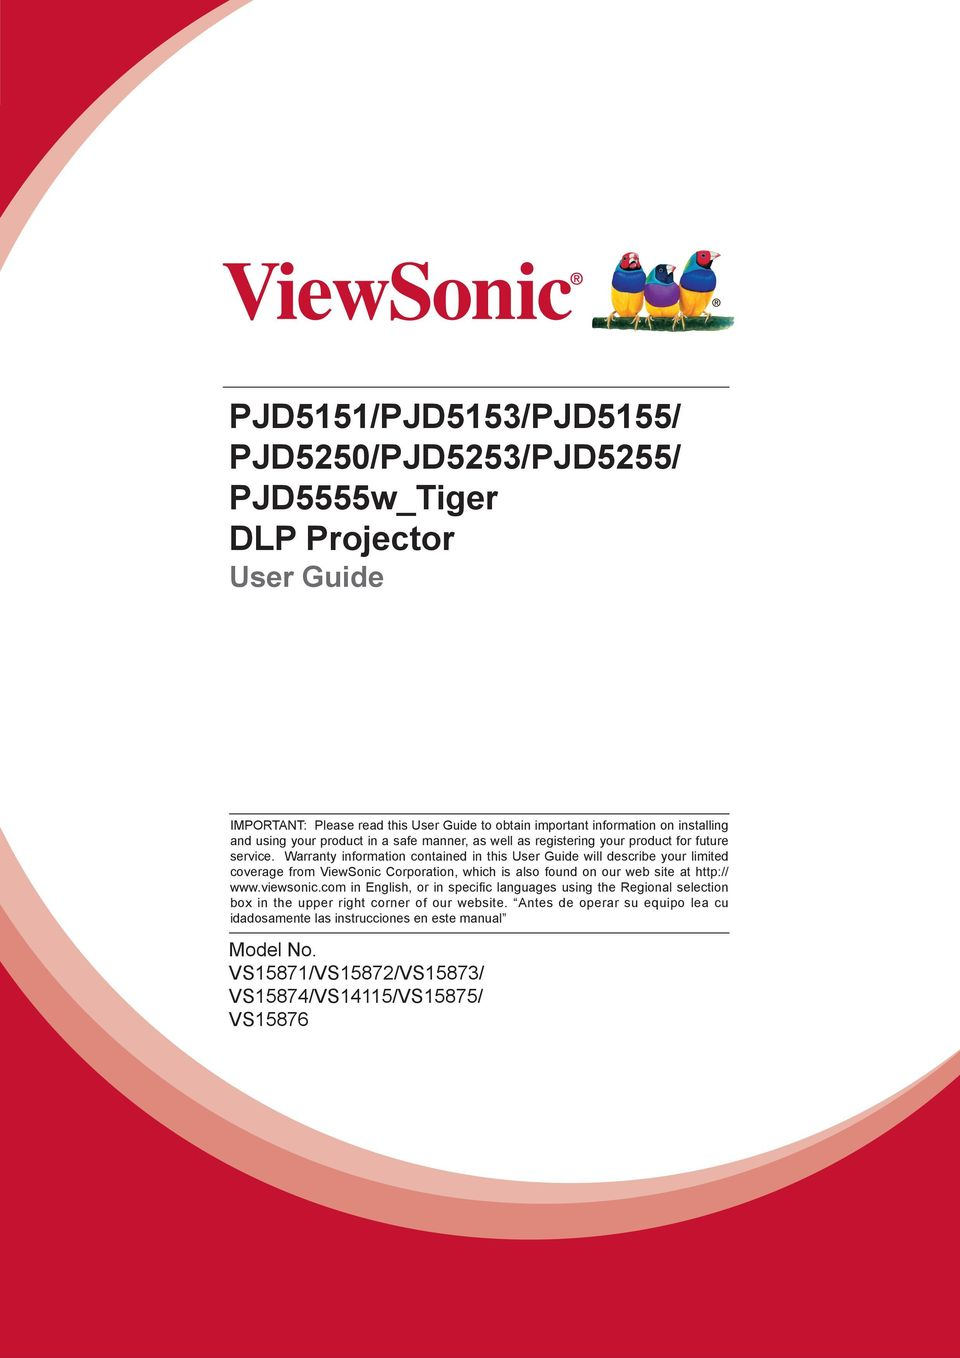 Warranty information contained in this User Guide will describe your limited coverage from ViewSonic Corporation, which is also found on our web site at http:// www.viewsonic.